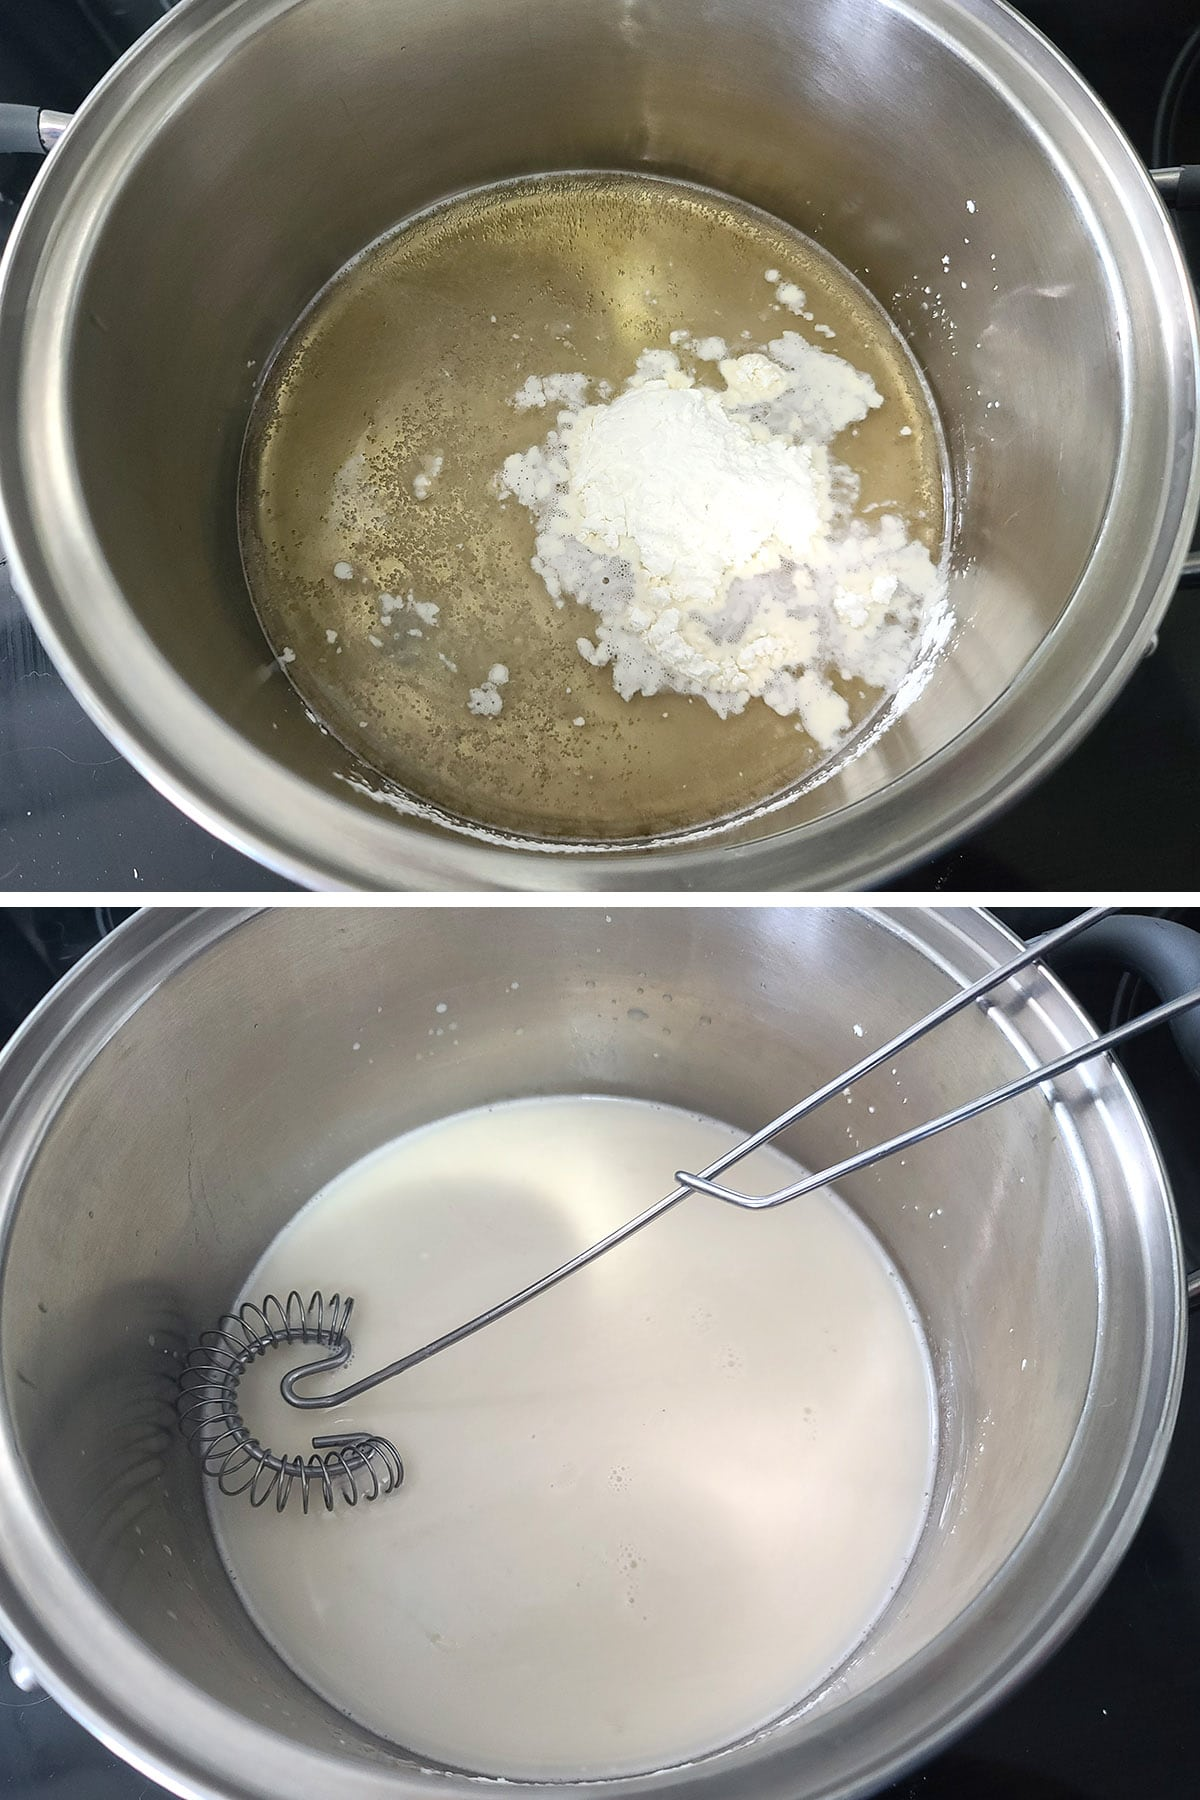 Corn starch is added to beer and whisked in.